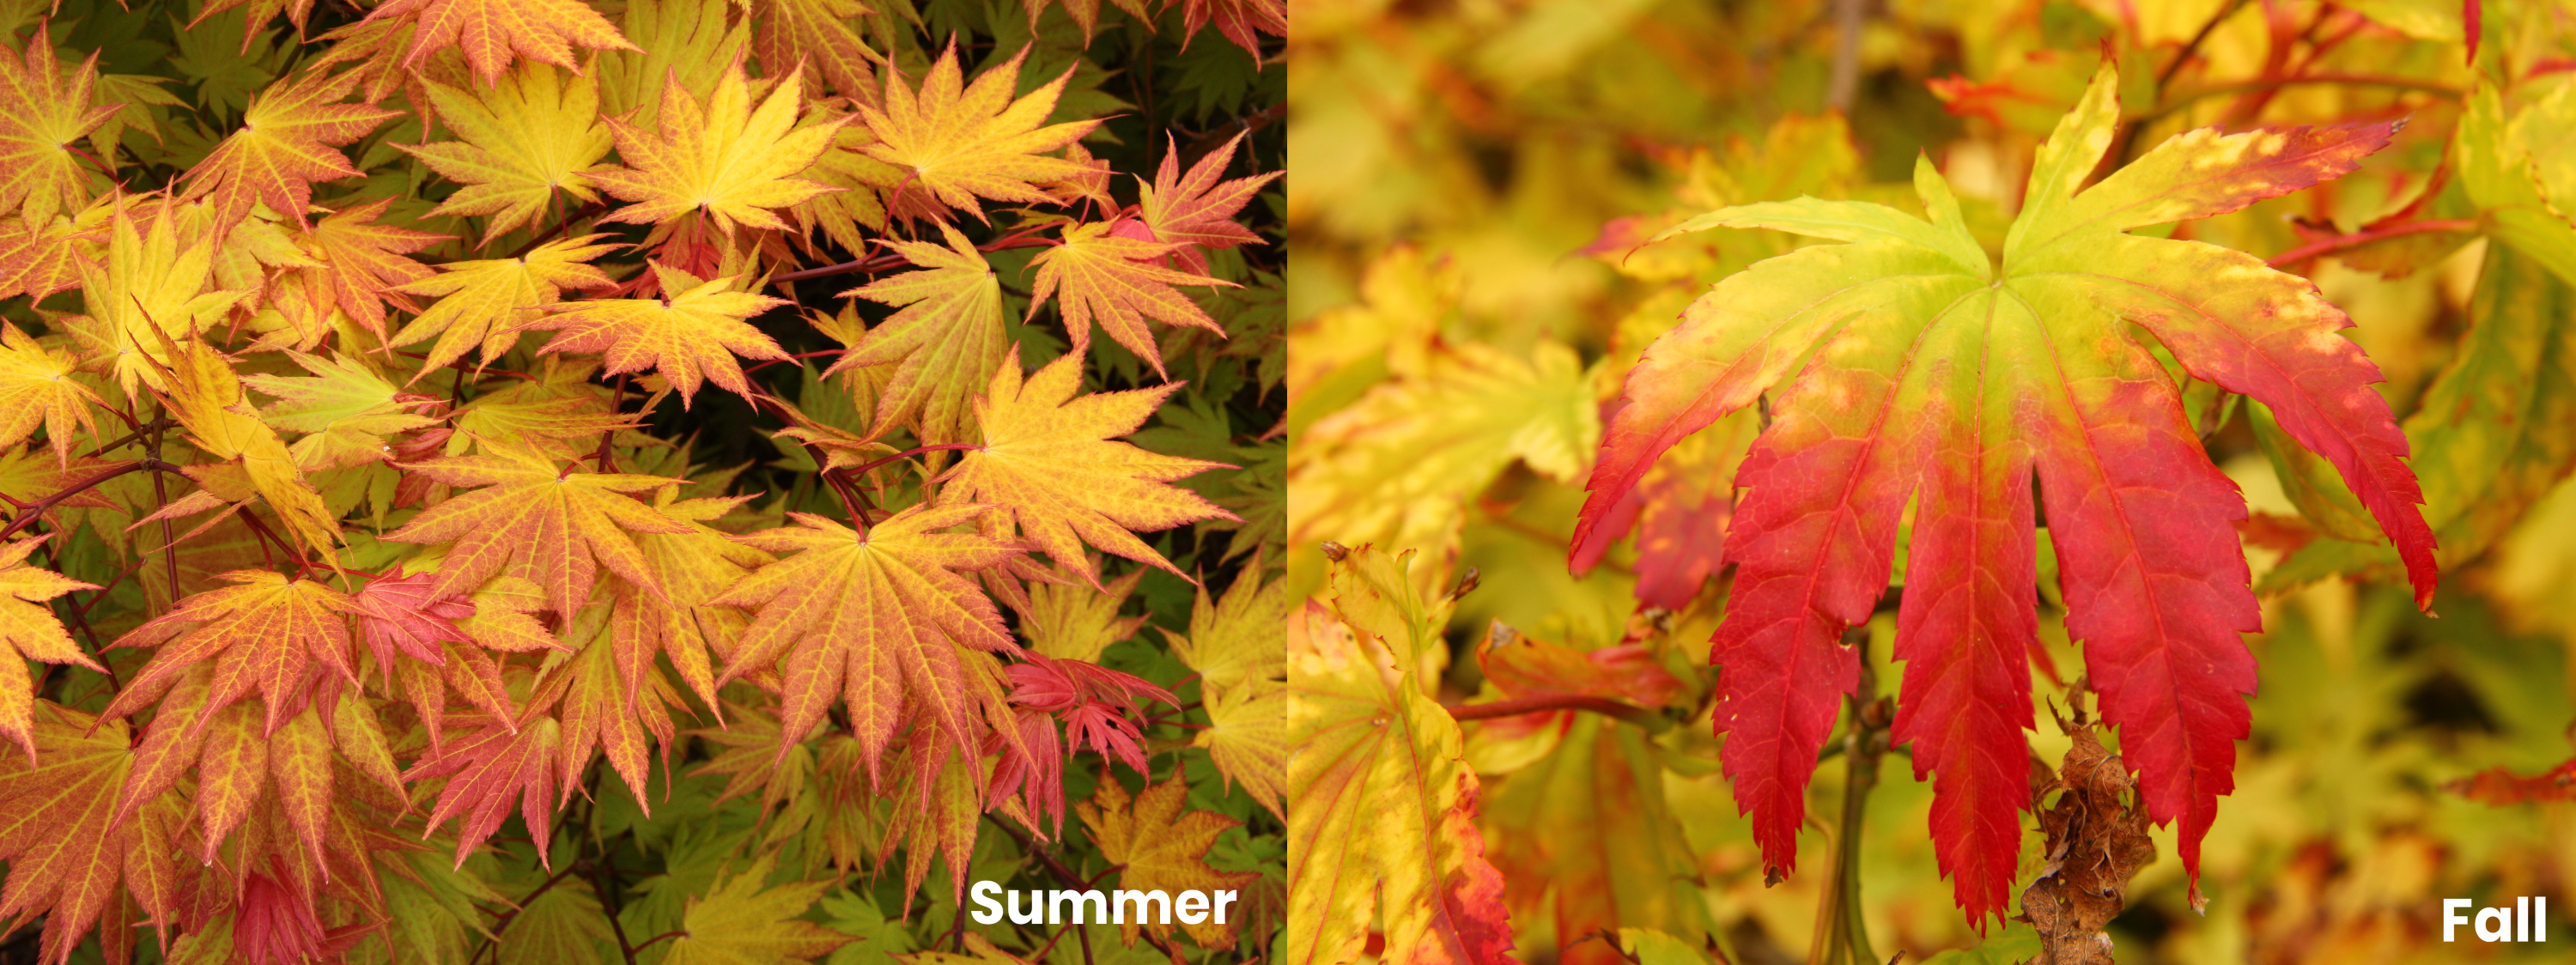 Japanese Maples Fall Colors Conifer Kingdom